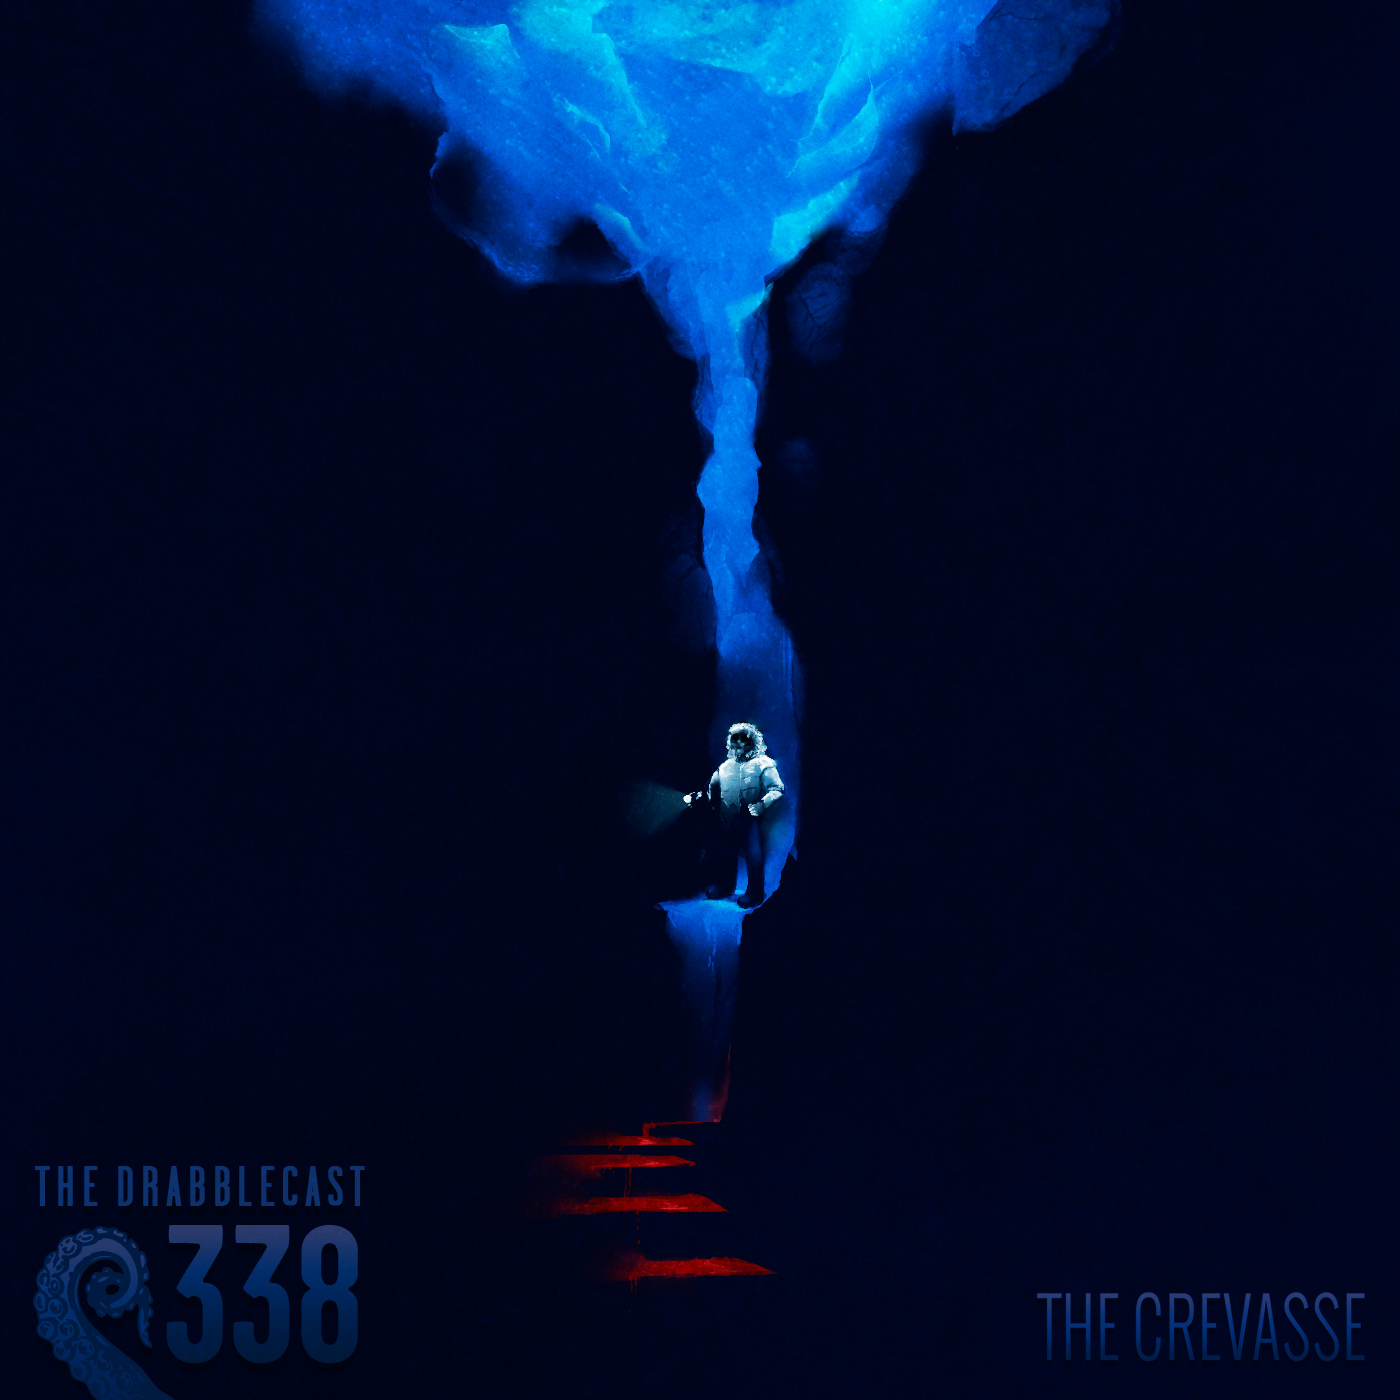 Cover for Drabblecast episode 338, The Crevasse, by Hannah Holloway